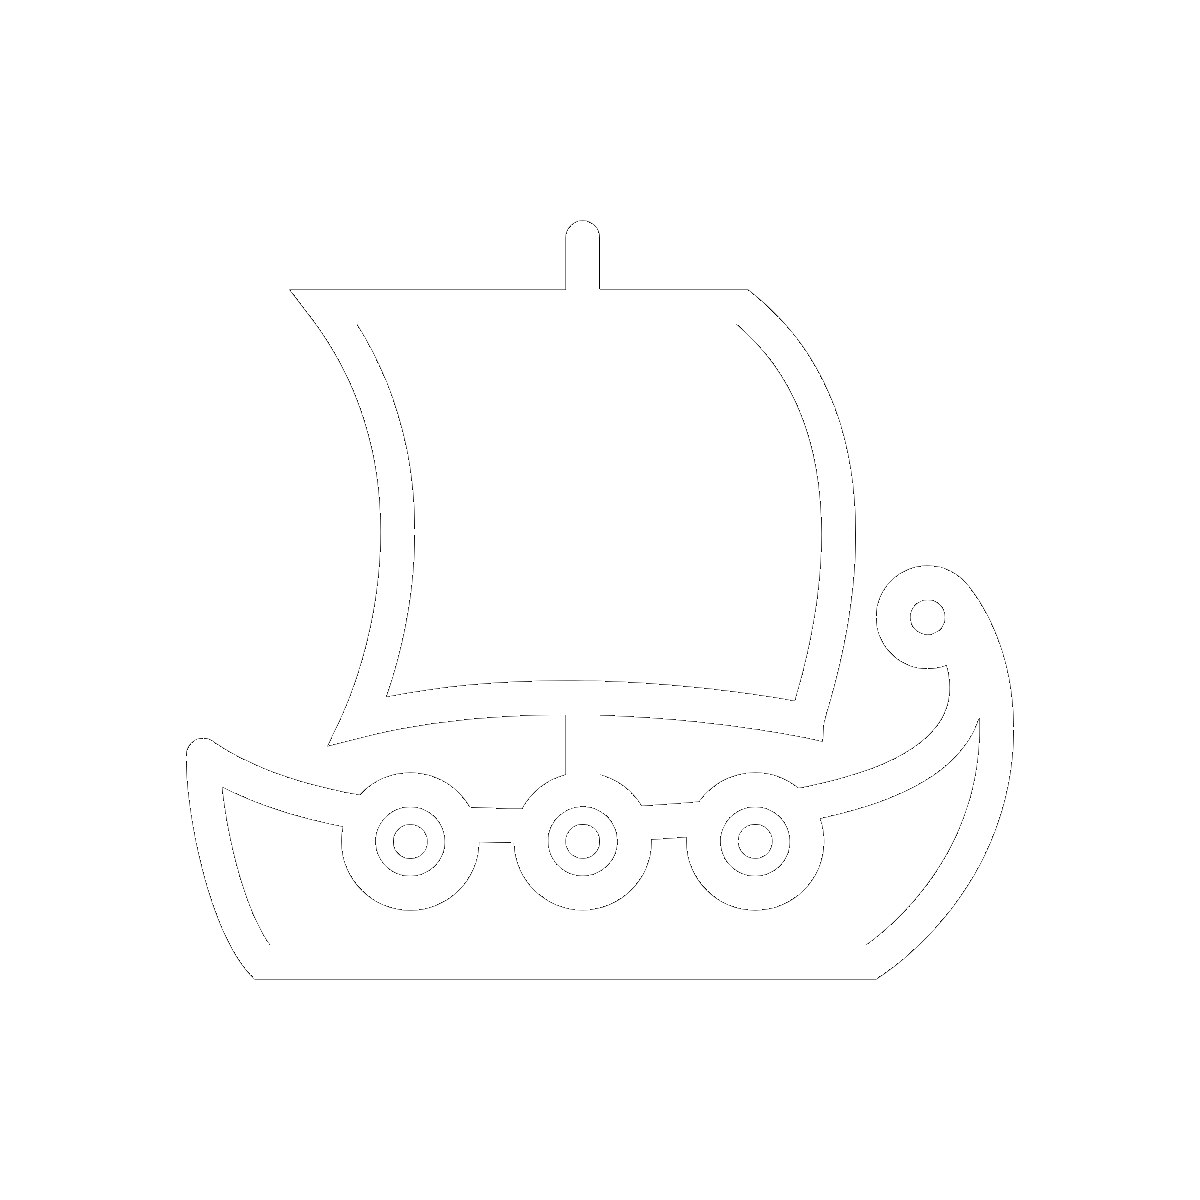 Symbol Ships and Navigation